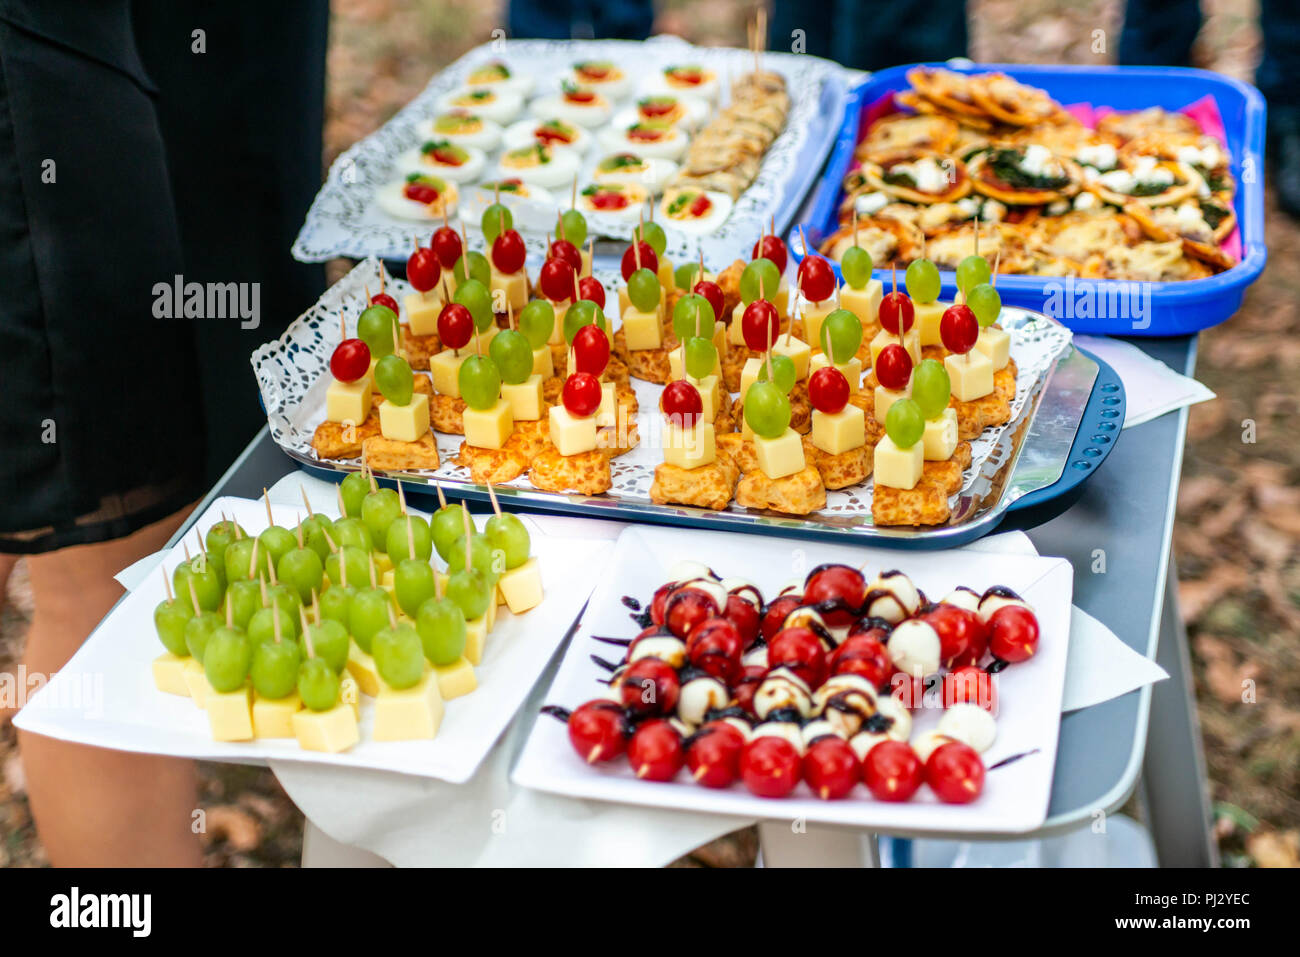 buffet Assortment of canapes. Banquet service. catering food, snacks with mixed fingerfood appetizers. - Stock Image